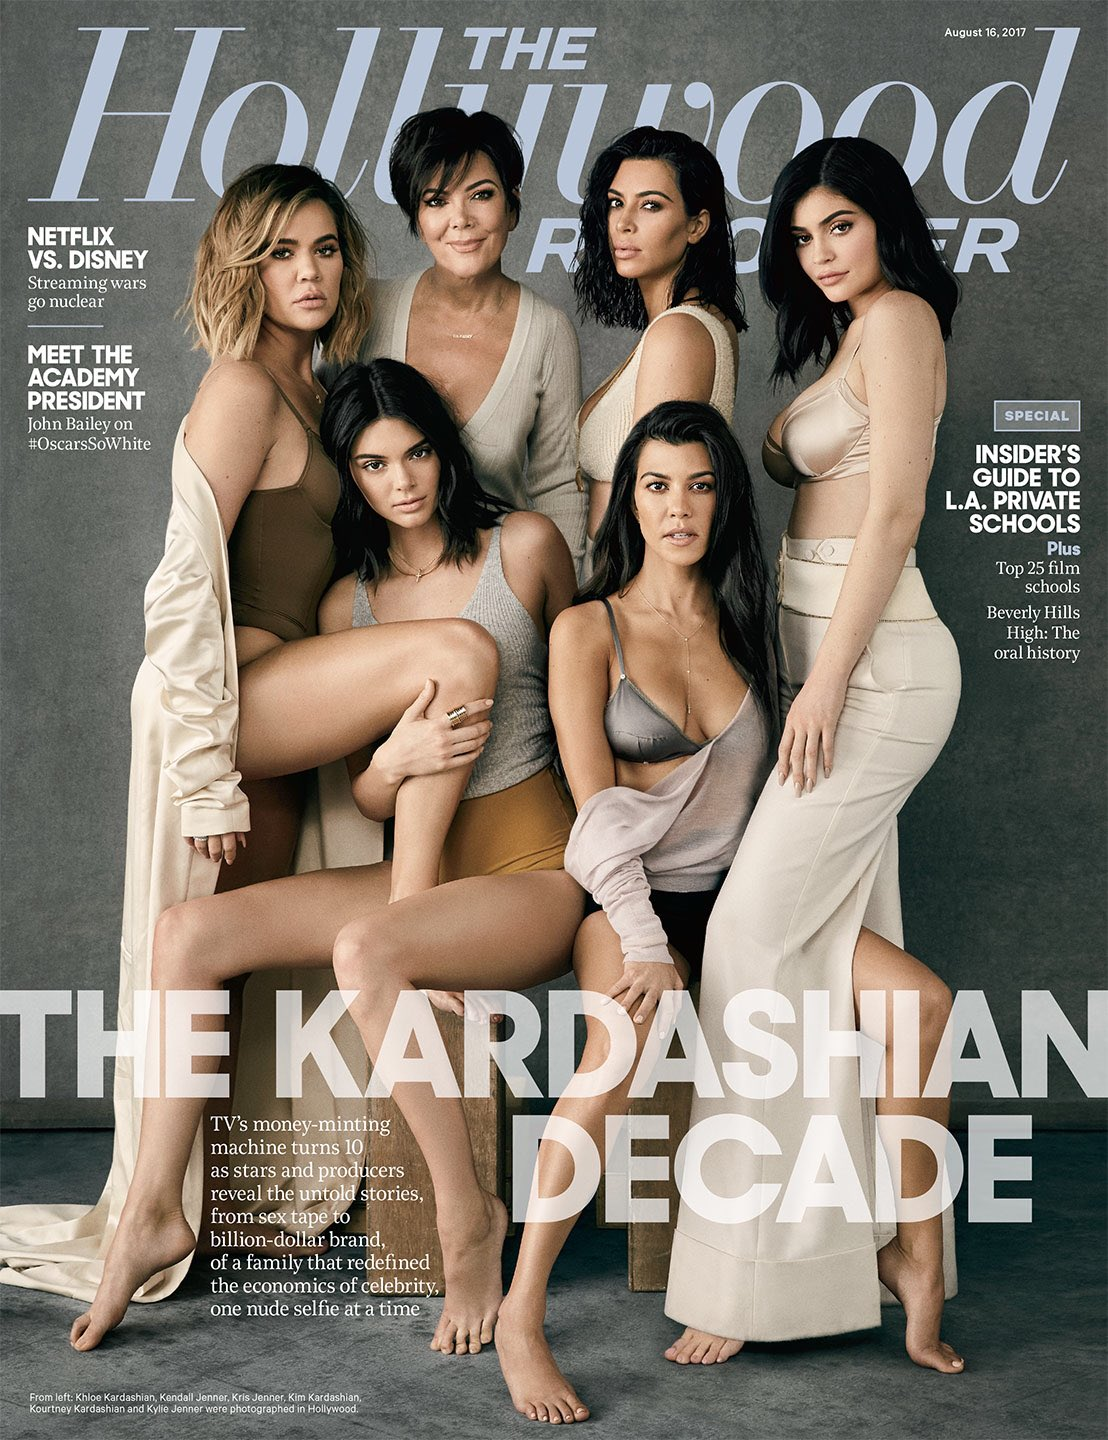 The Hollywood Reporter #TheKardashianDecade https://t.co/IF1e0Kyz2d